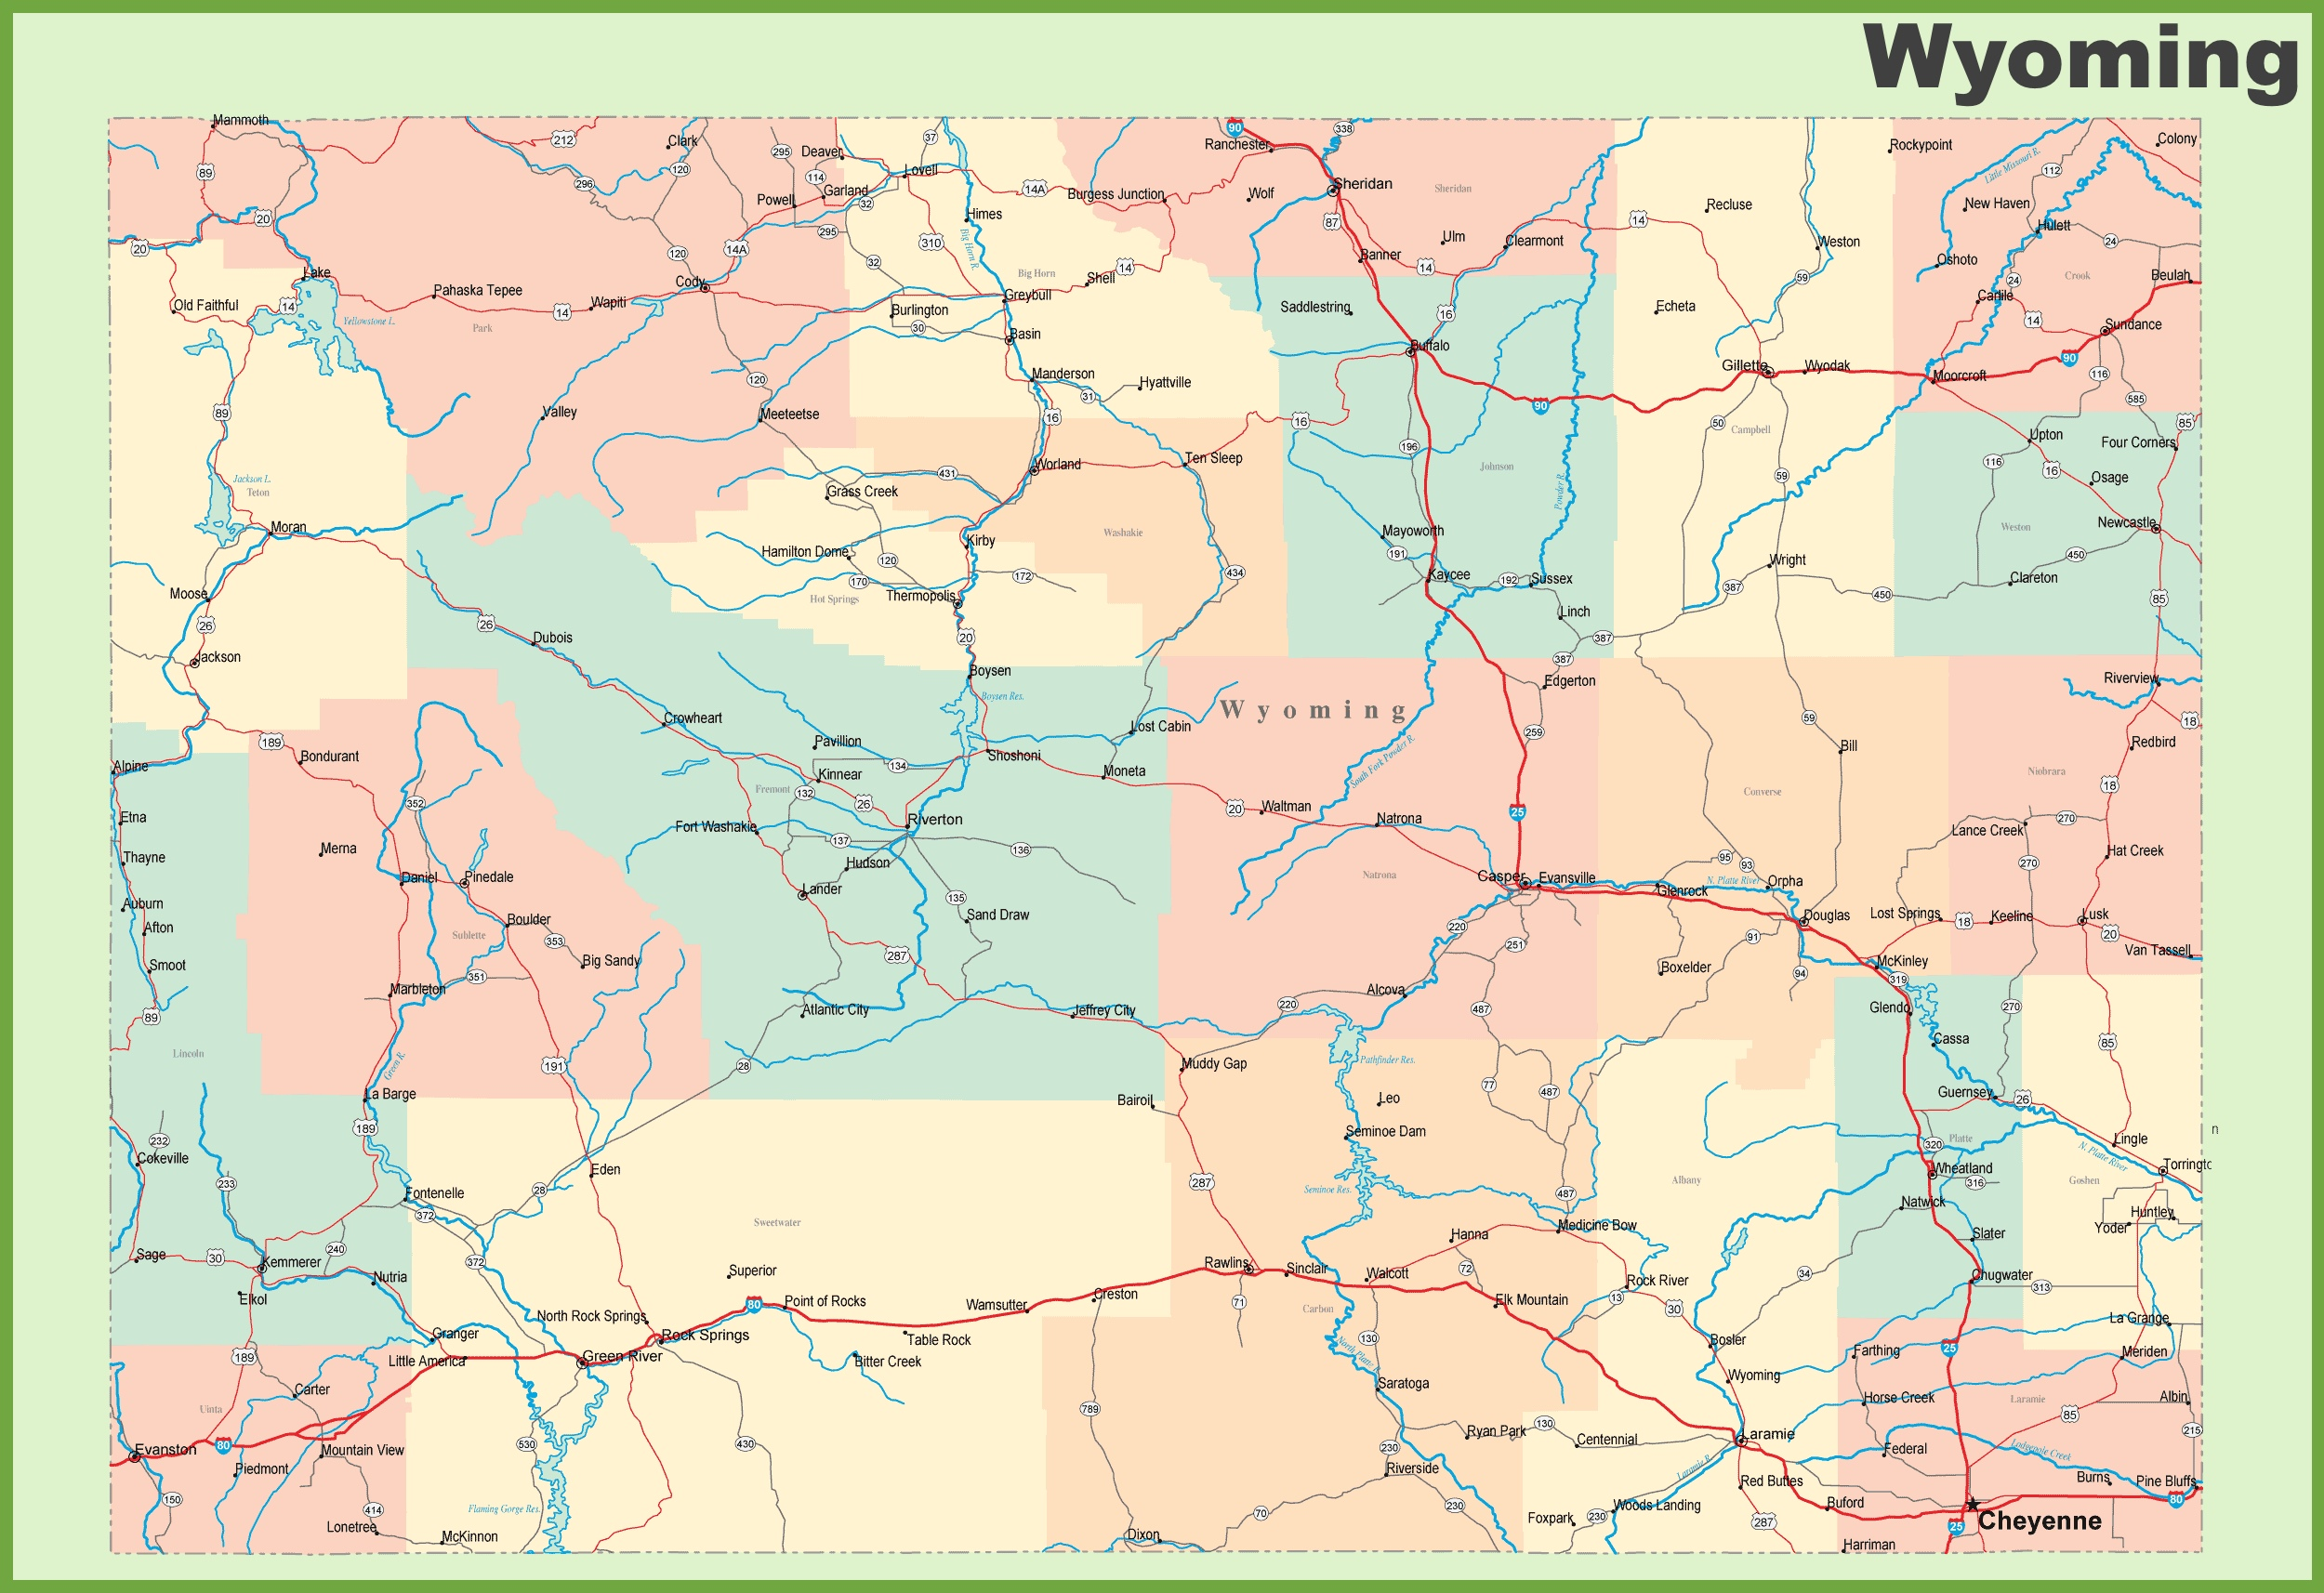 Road Map Of Wyoming With Cities - Wyoming map